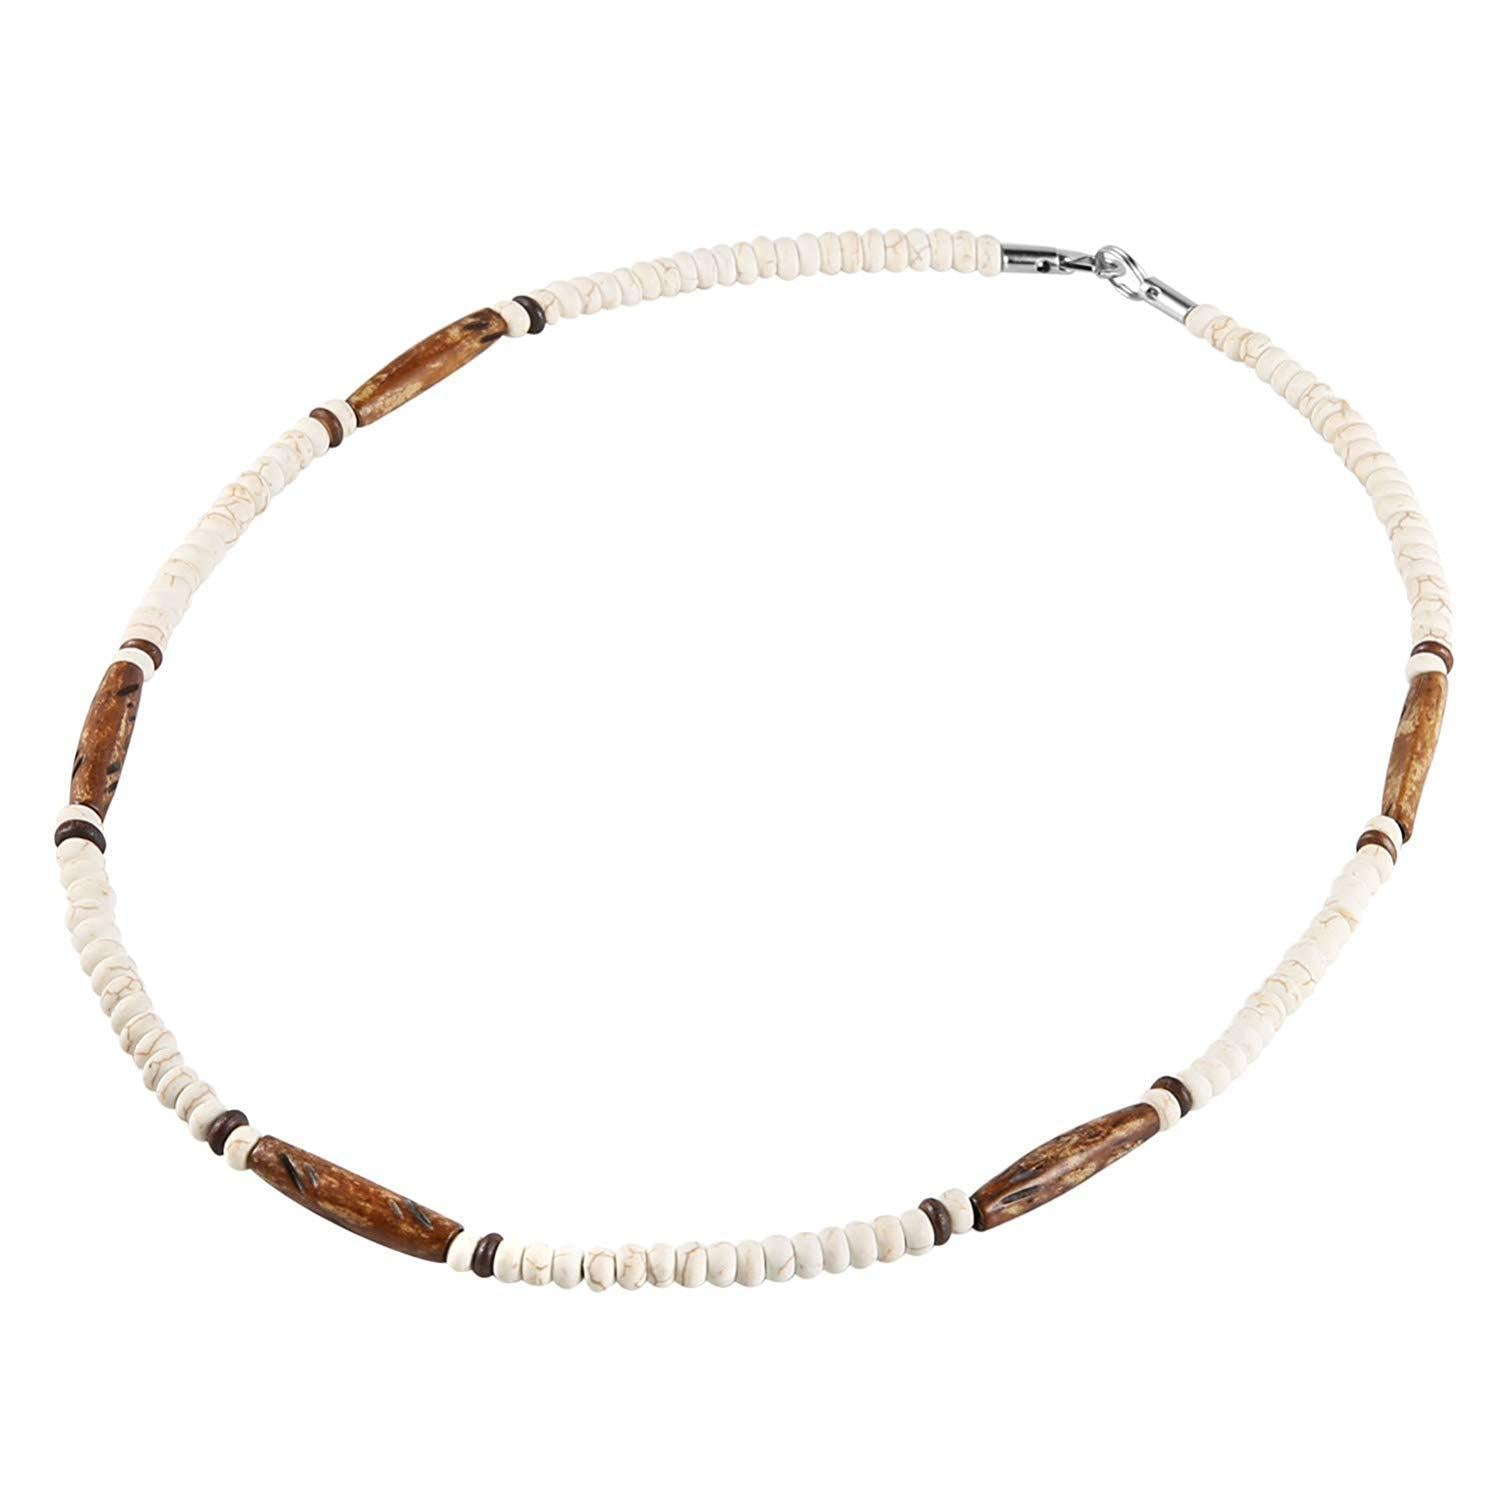 Hzman Buffalo Bone Native American Inspired Tribal Style Collar Choker Necklace @ Sons of Odin™ -